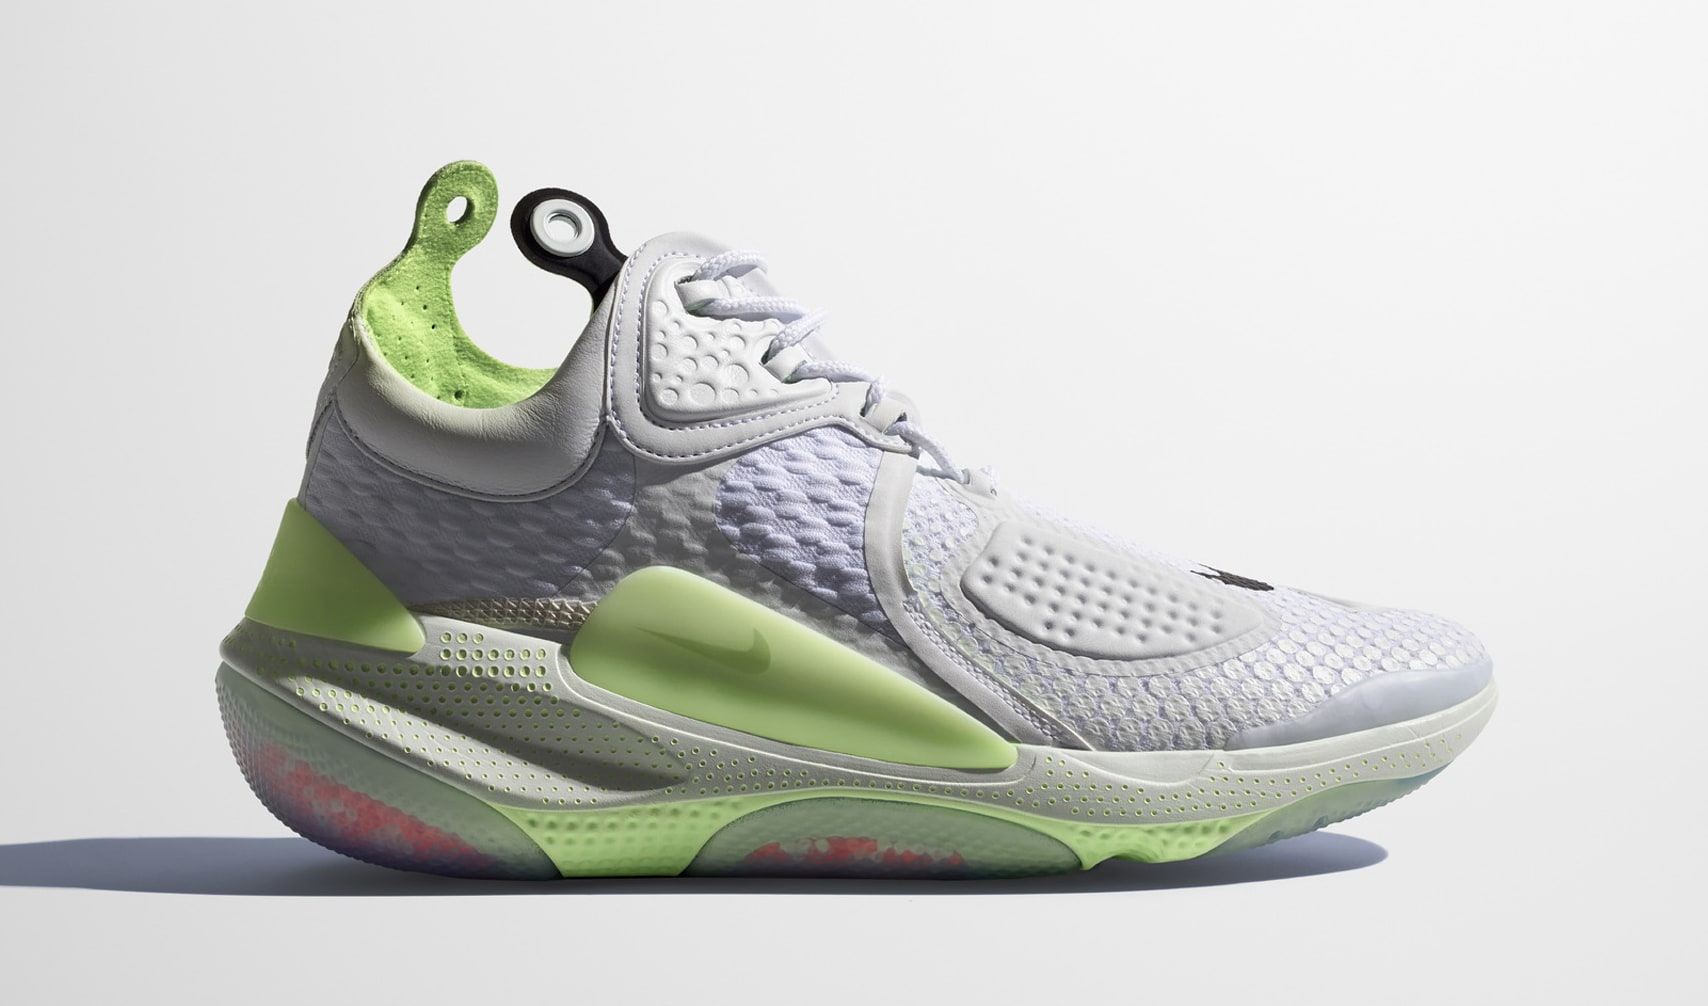 Nike Joyride NSW Setter (Lateral)